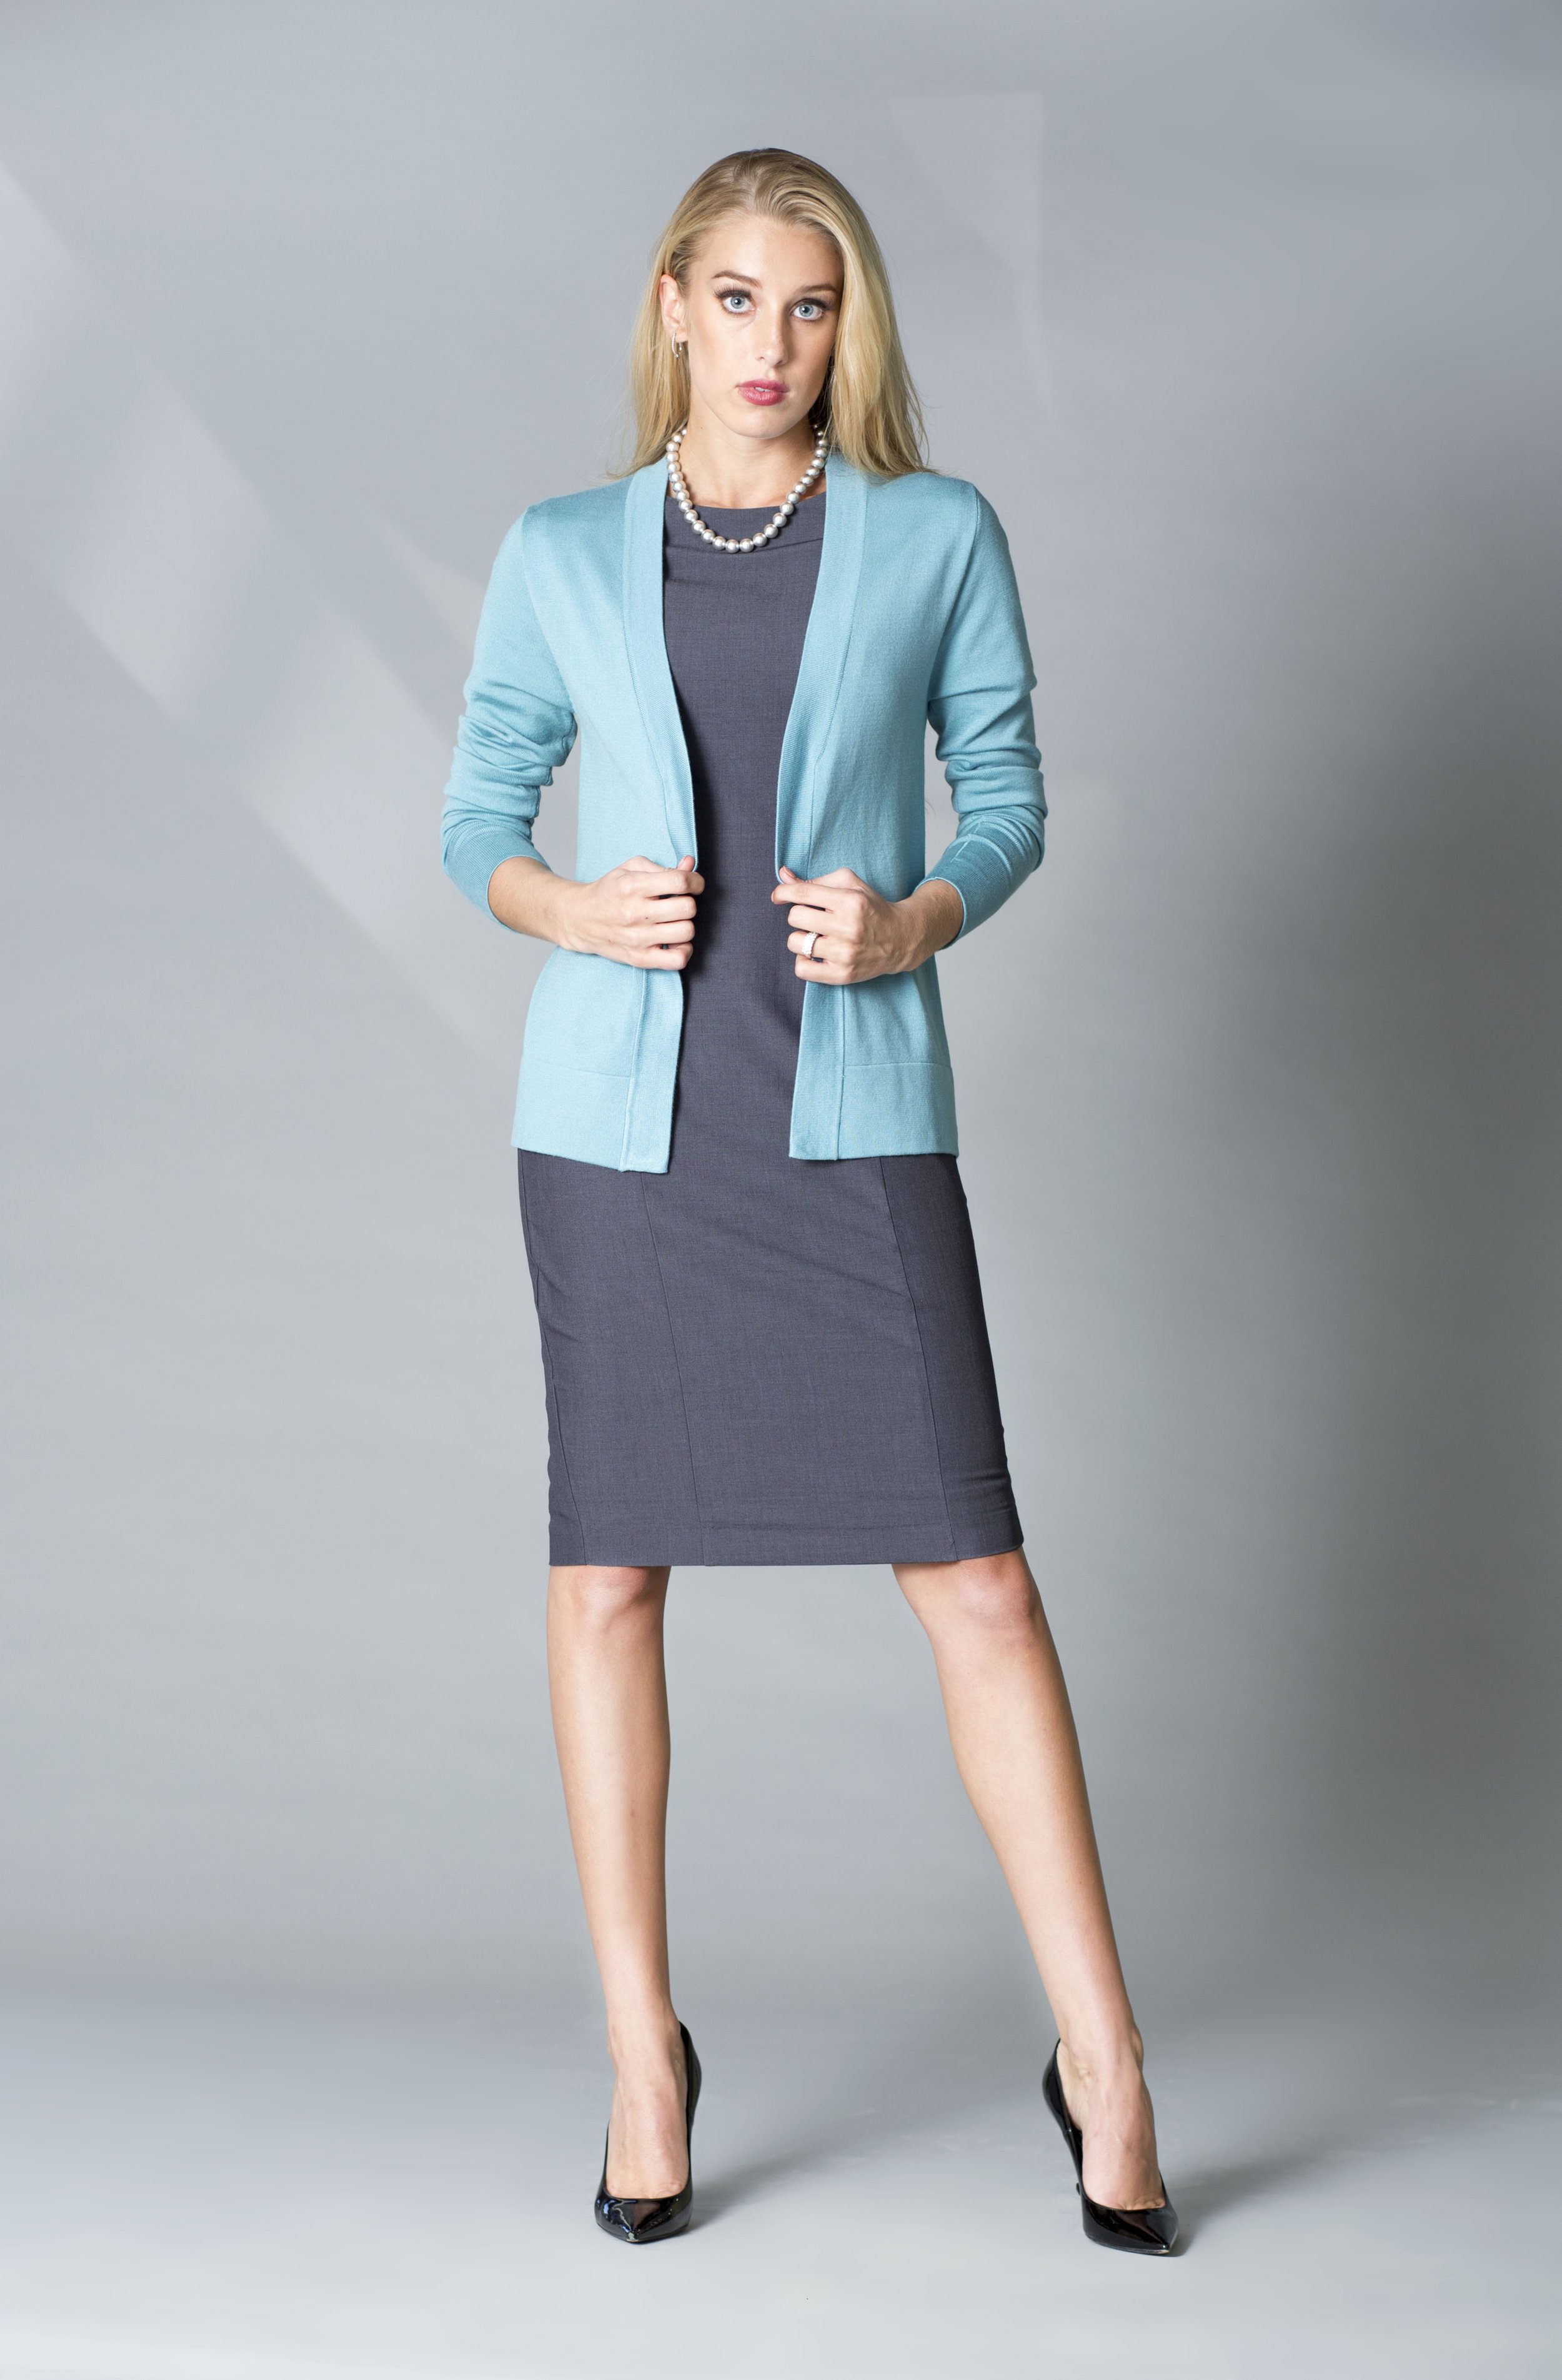 MDSN Vestido VV gris -card light teal copy.jpg